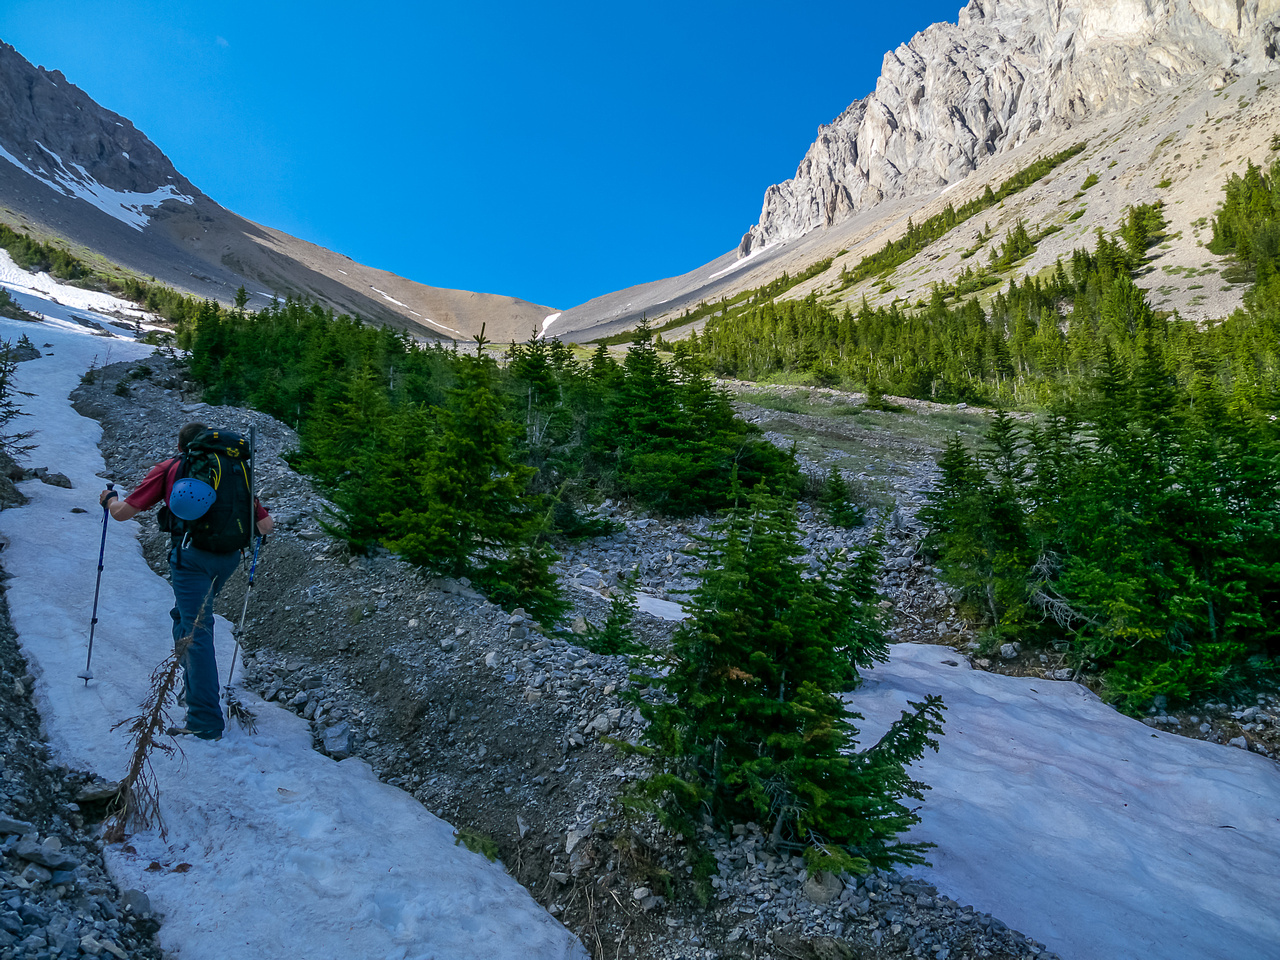 Approaching tree line as we head for the Pig's Tail / Commonwealth col.